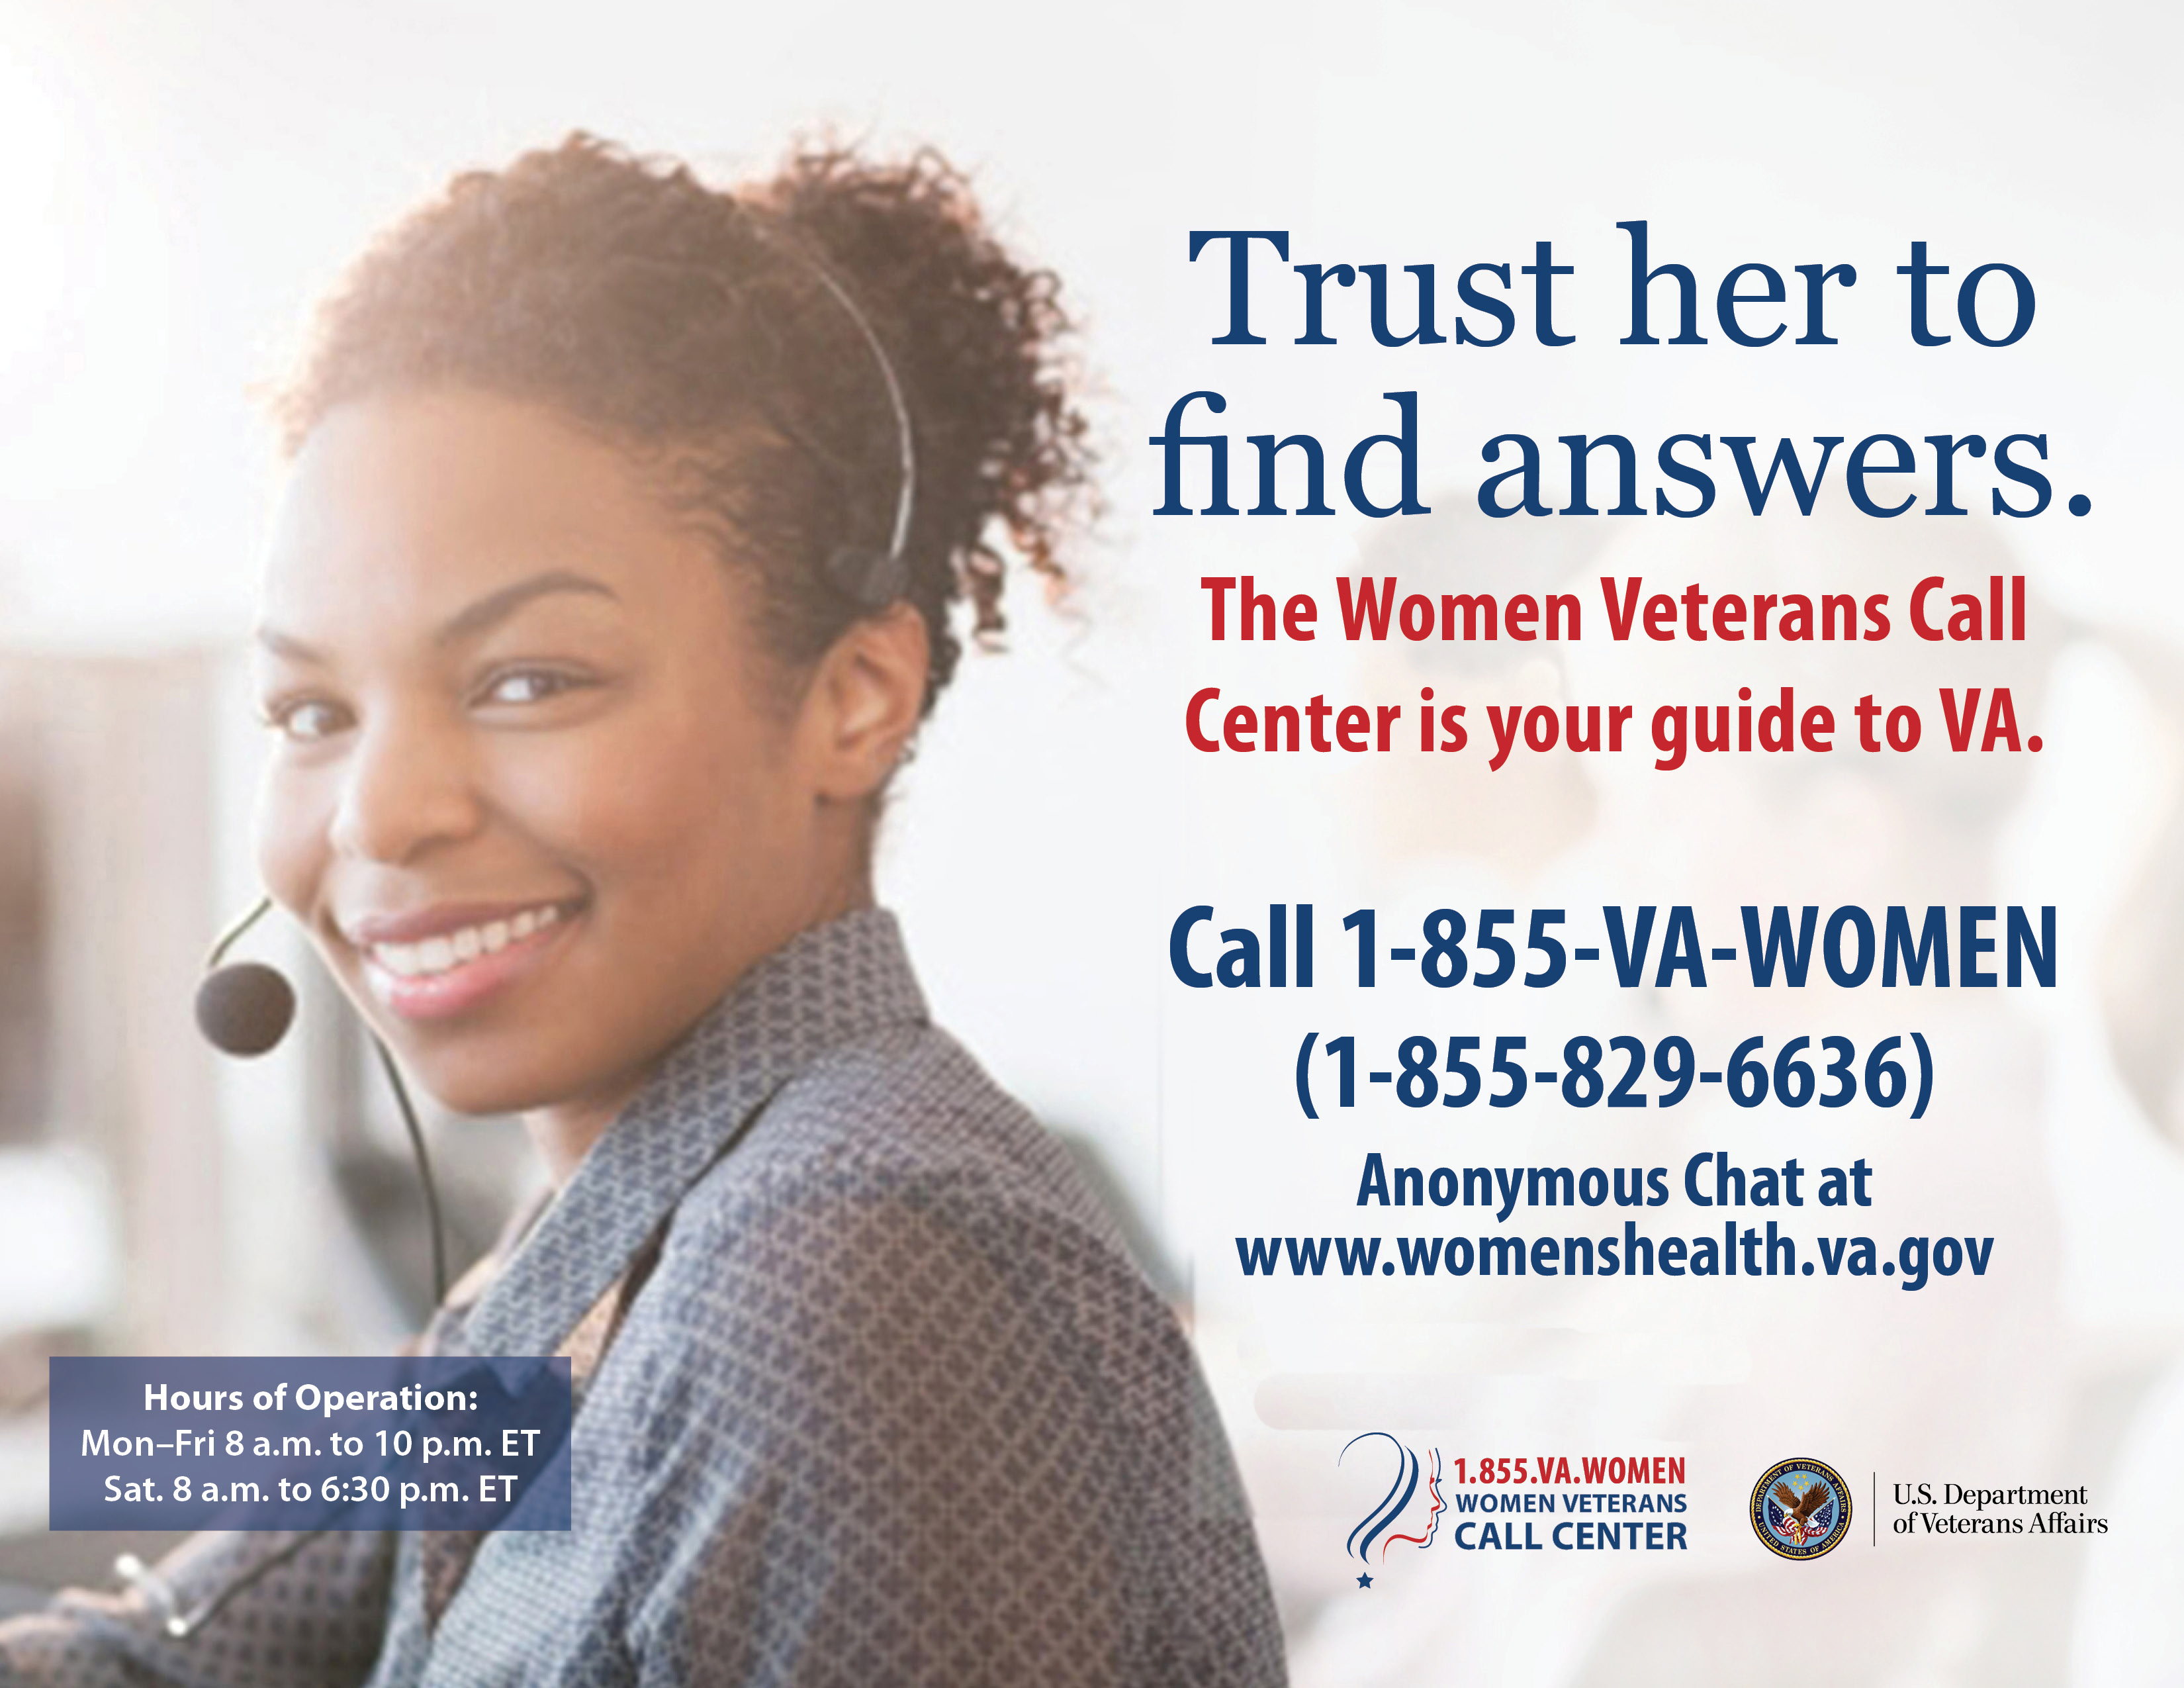 trust her to answers women veterans health care image of women veterans call center poster